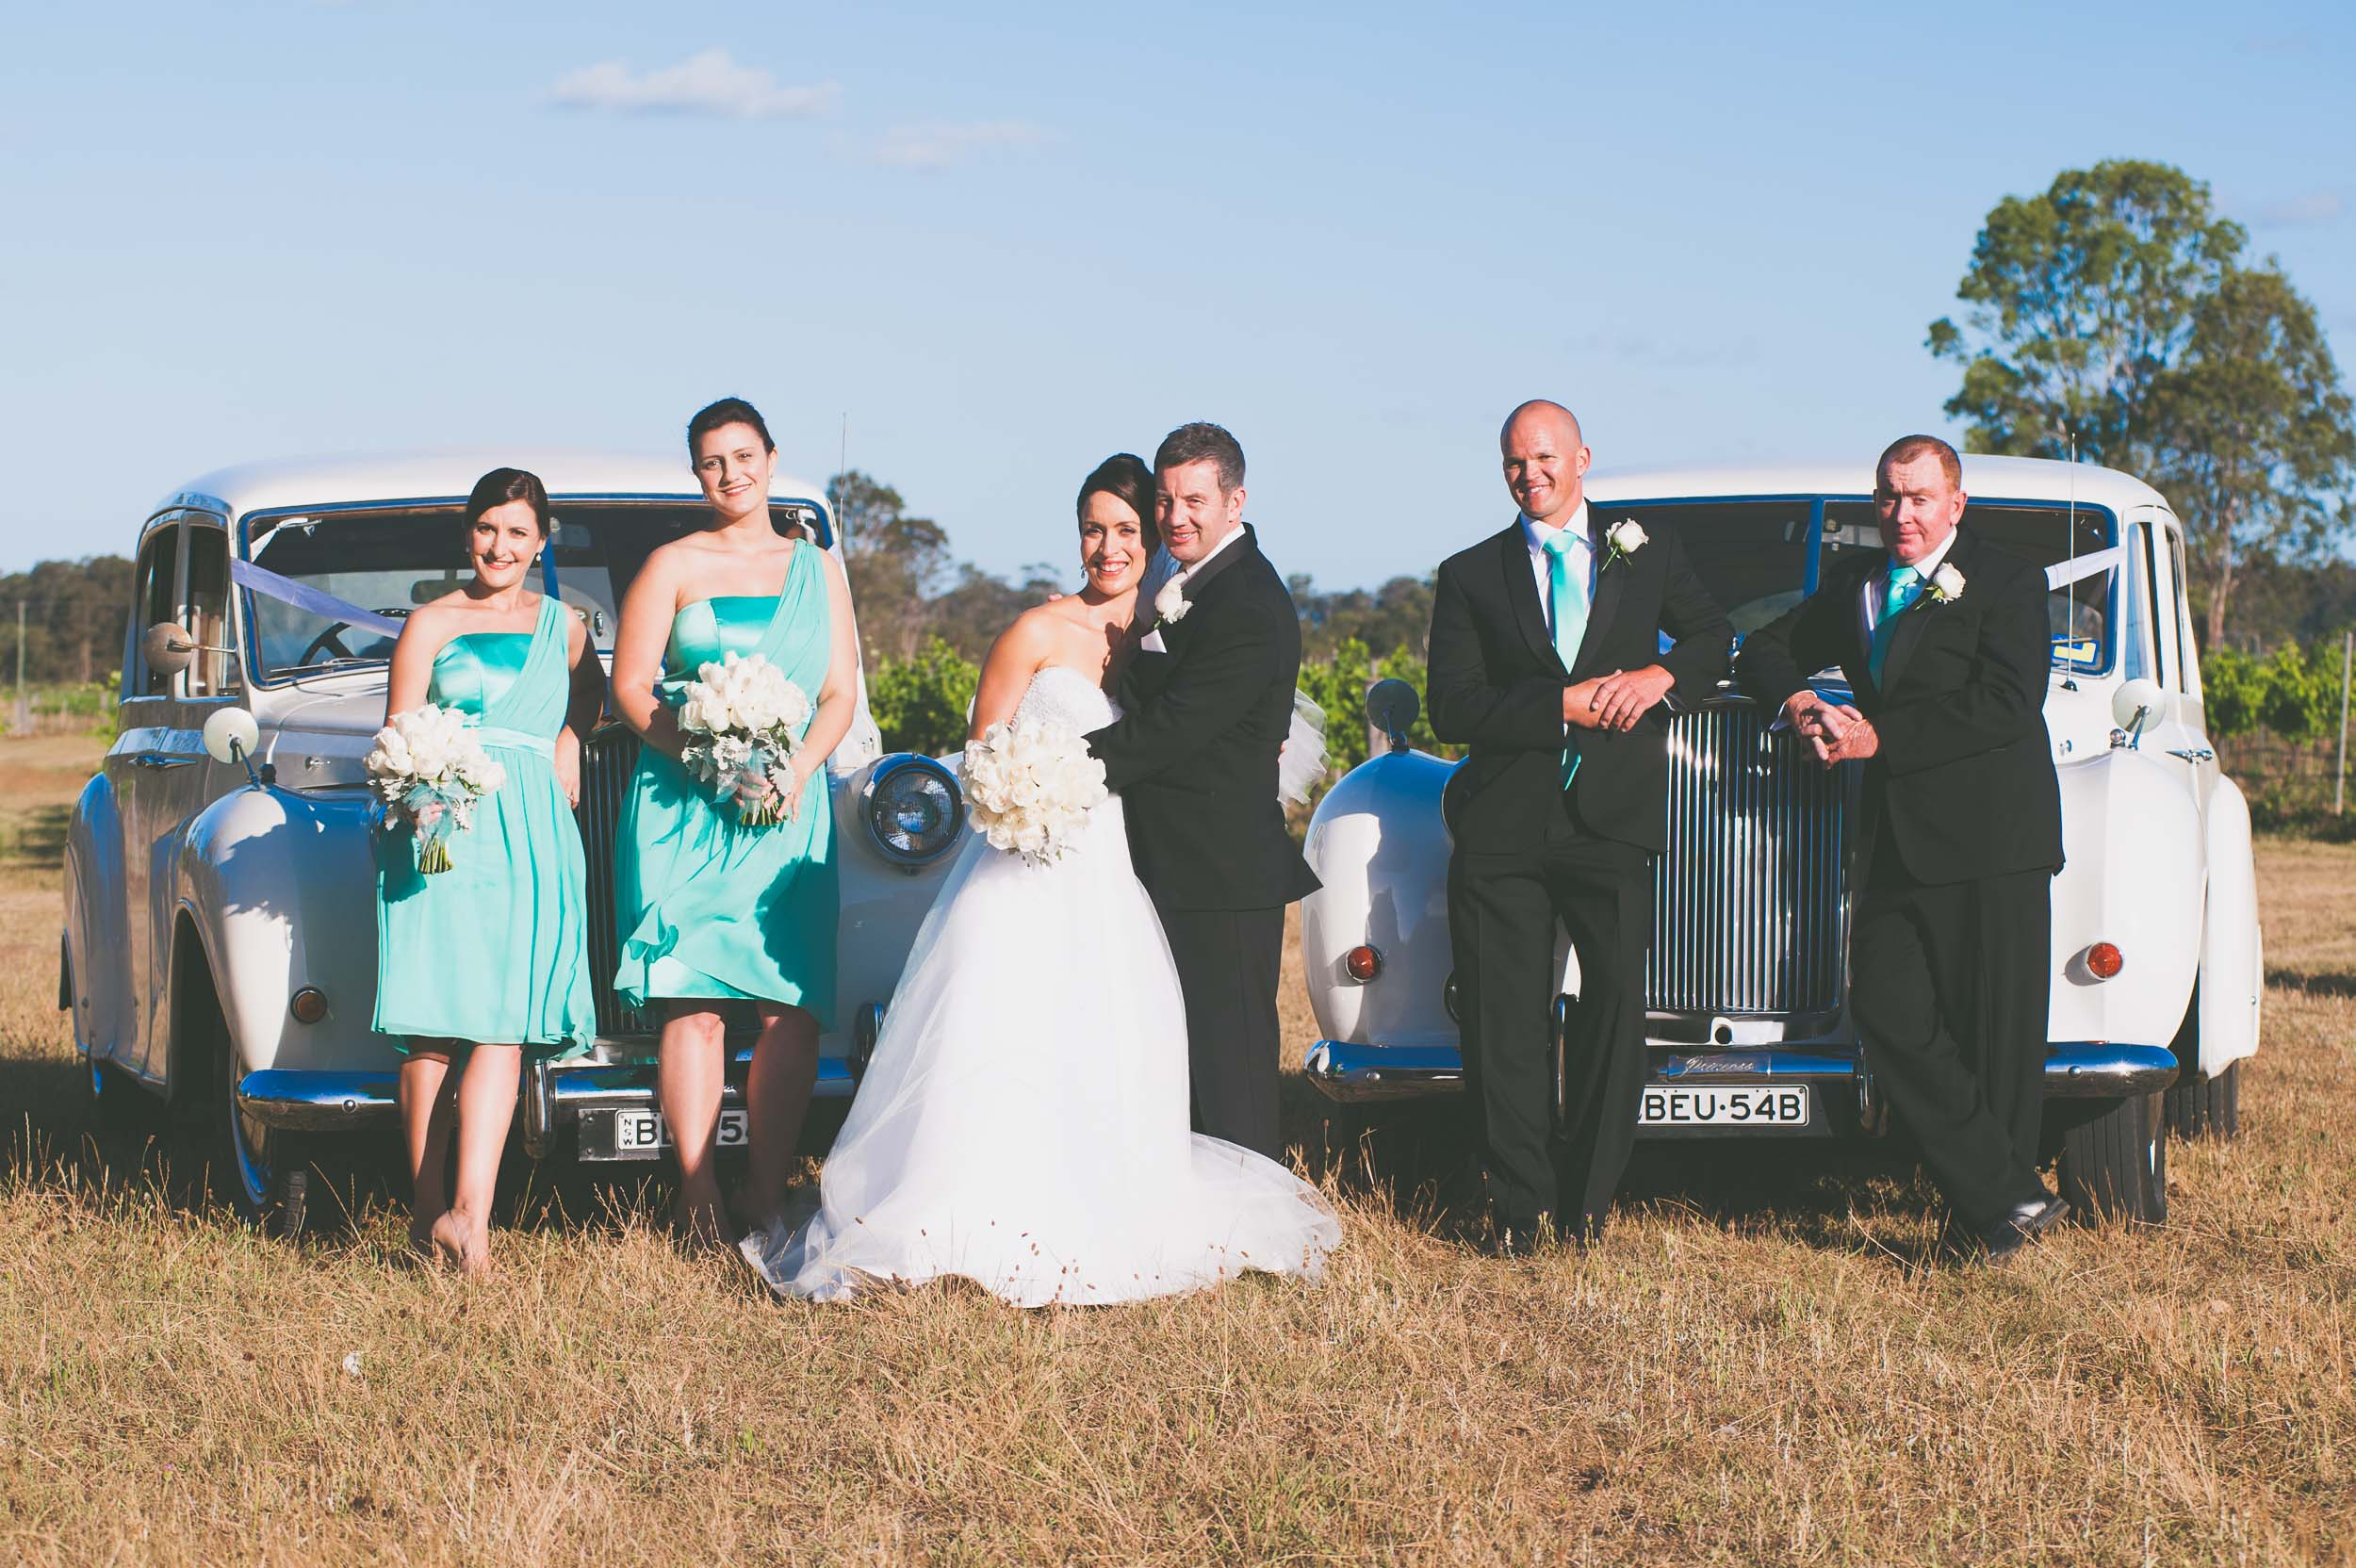 Bridal party in front of cars - Weddings - Photo credit Nicola Bailey.jpg